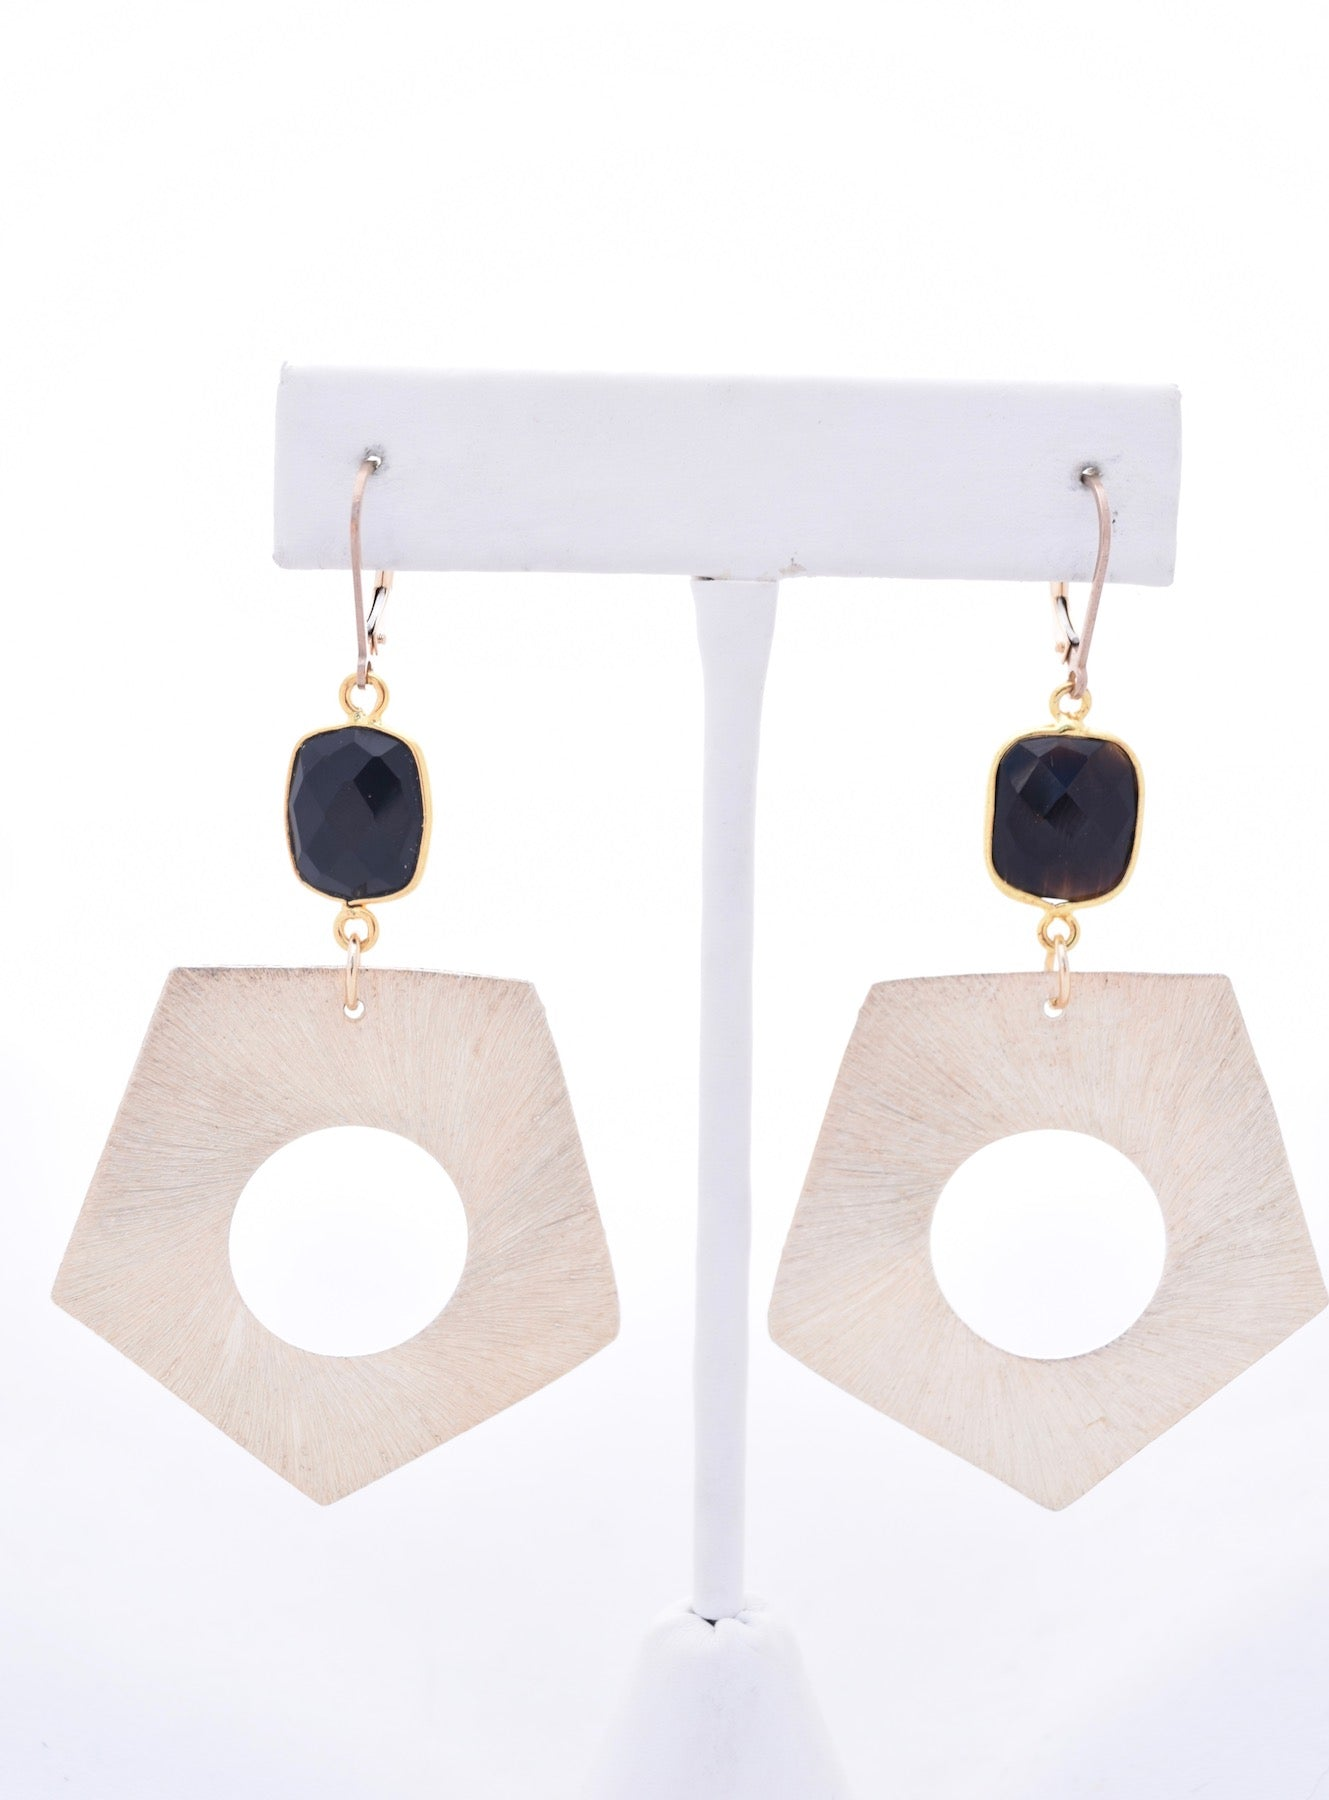 Gold Geometric and Black Onyx Earrings